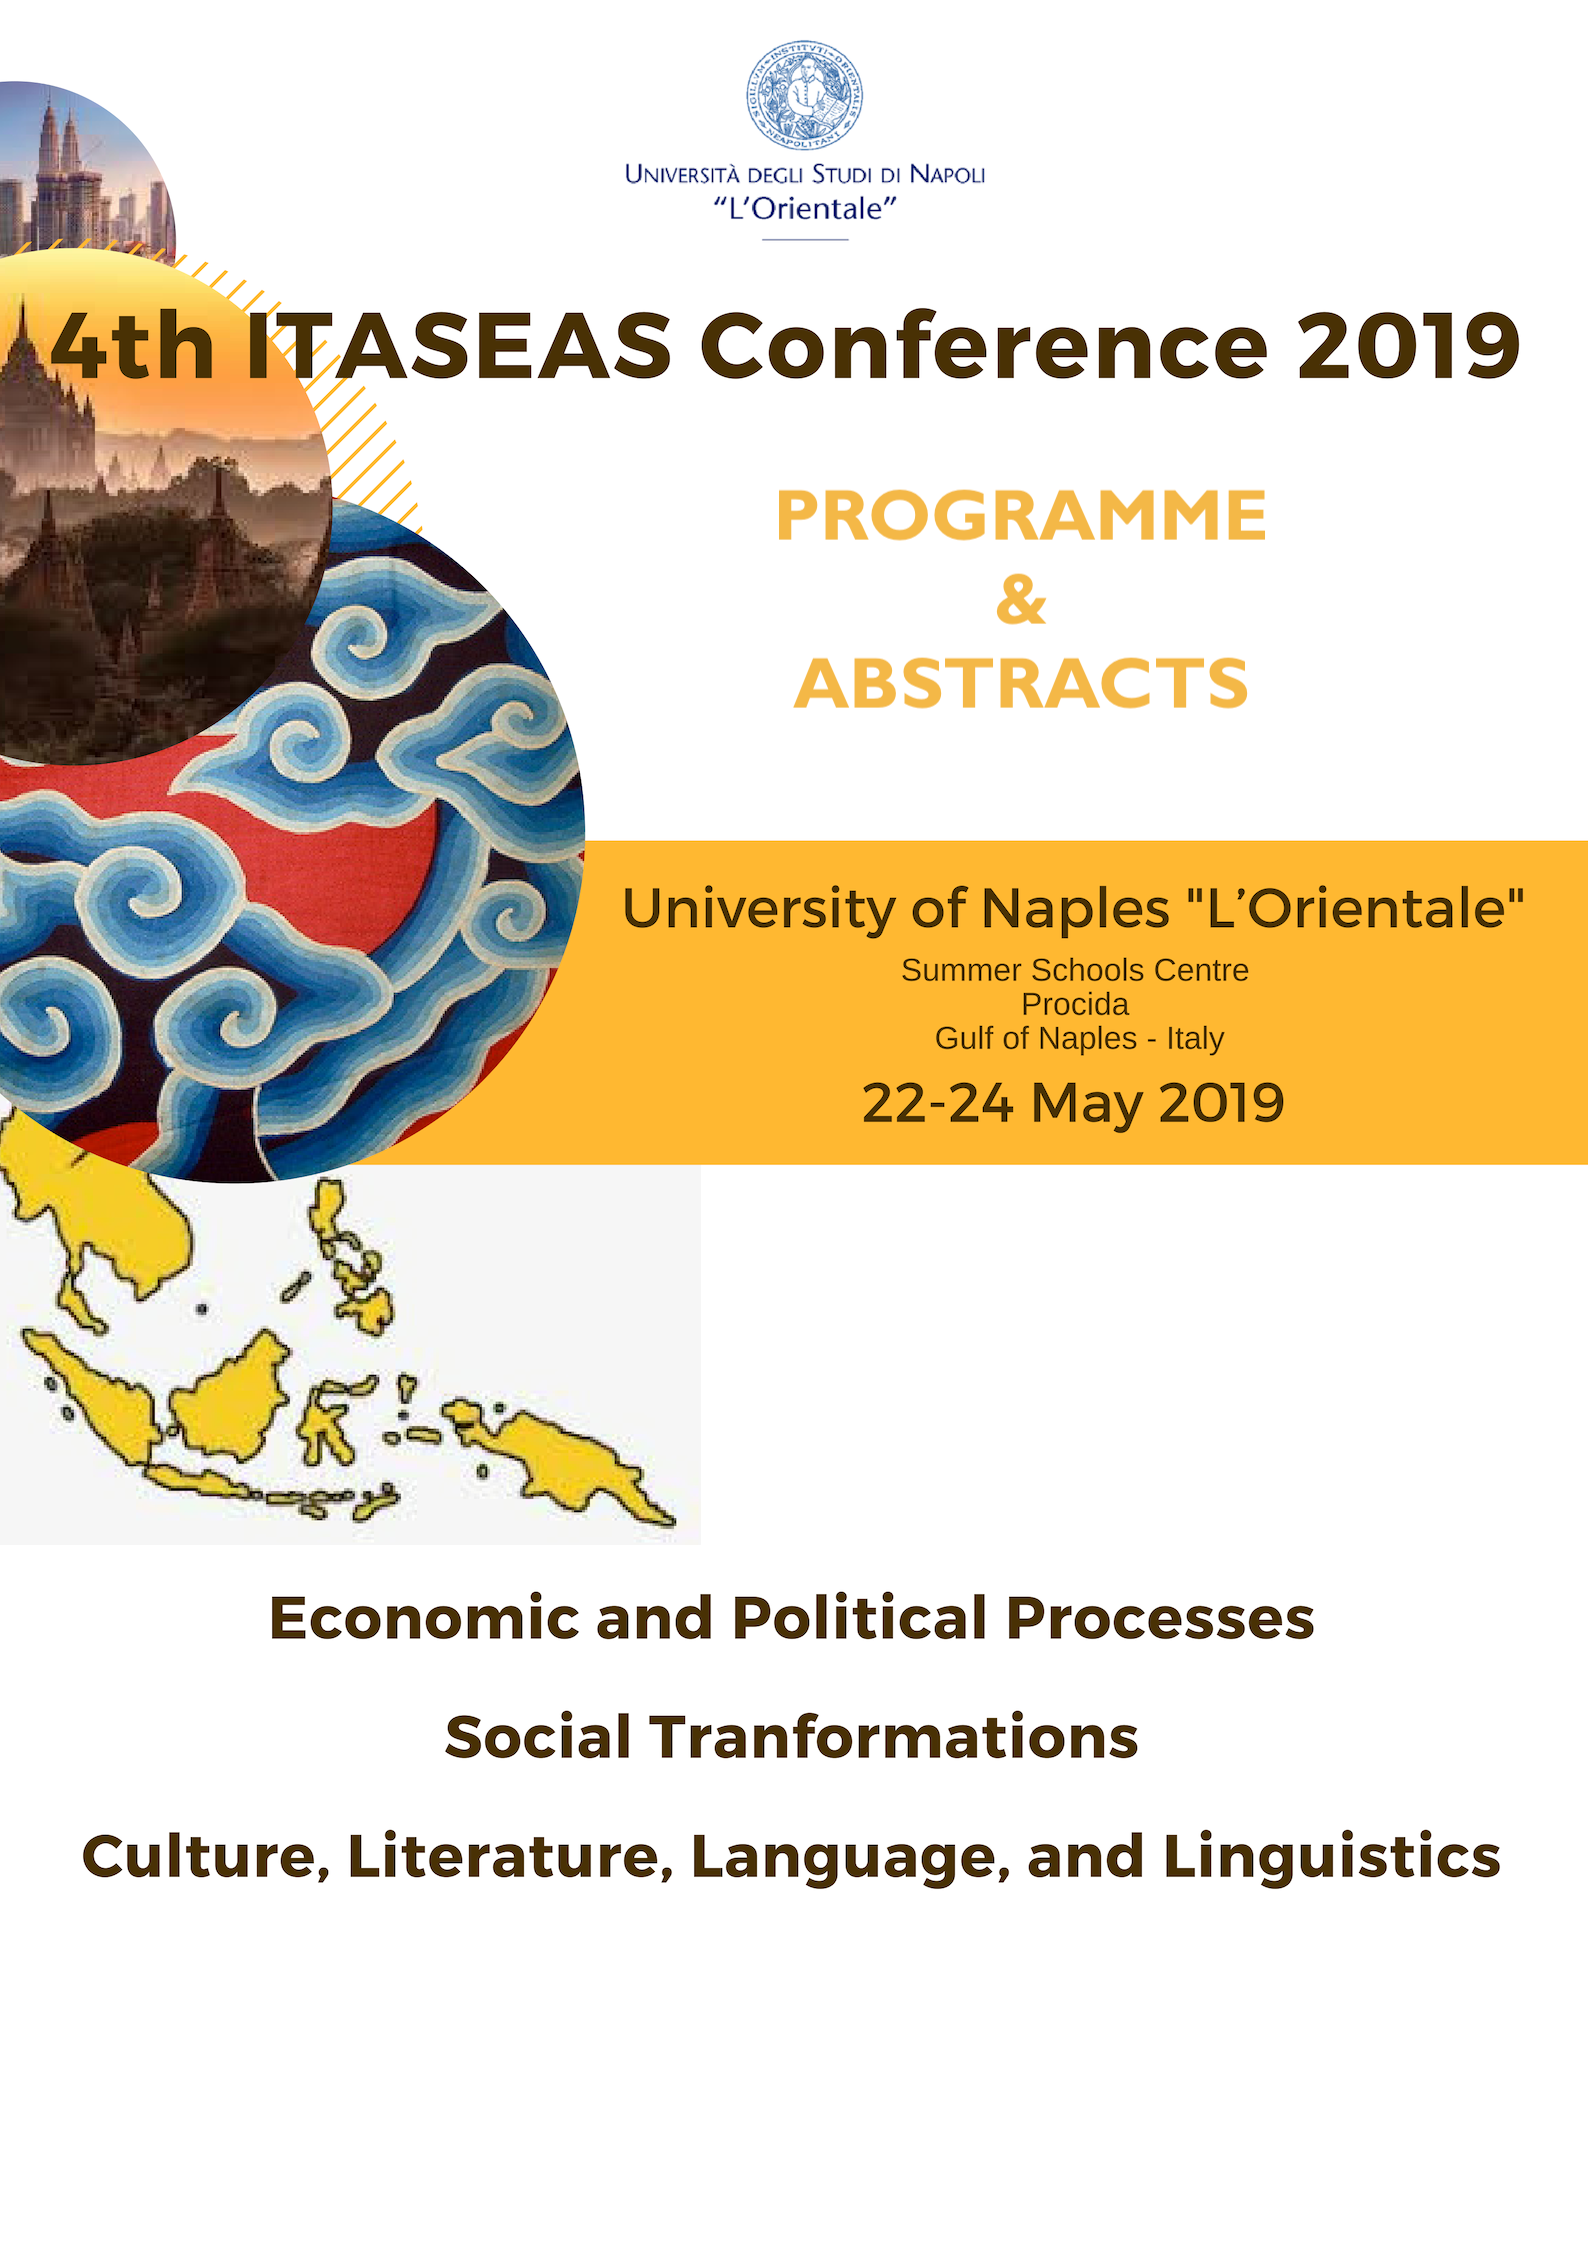 PROGRAMME & ABSTRACTS